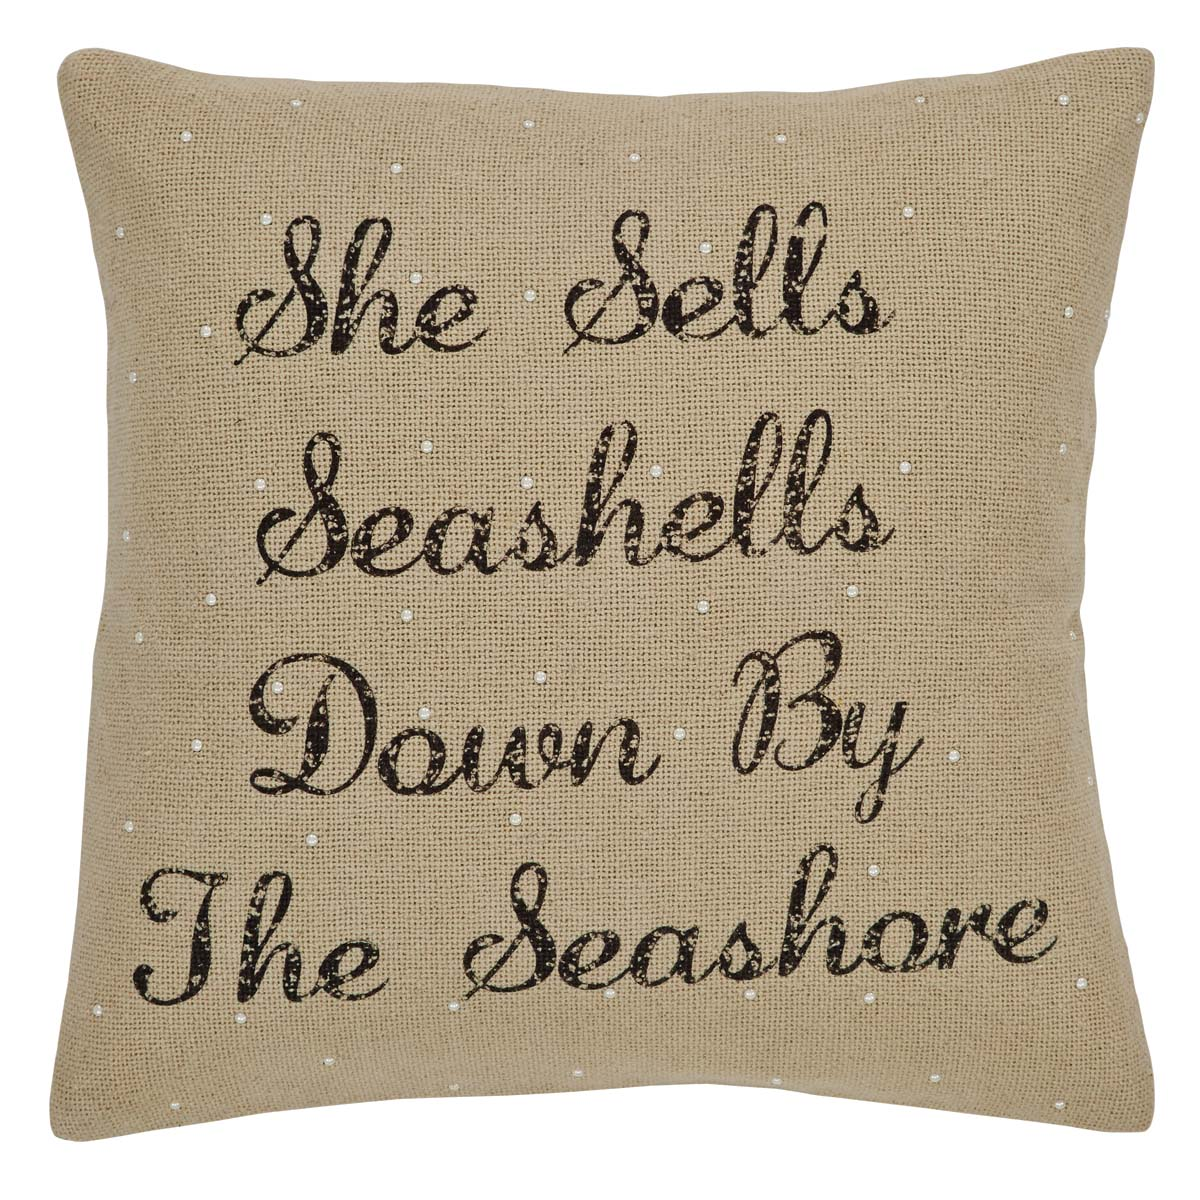 She Sells Seashells Pillow Cover 18x18